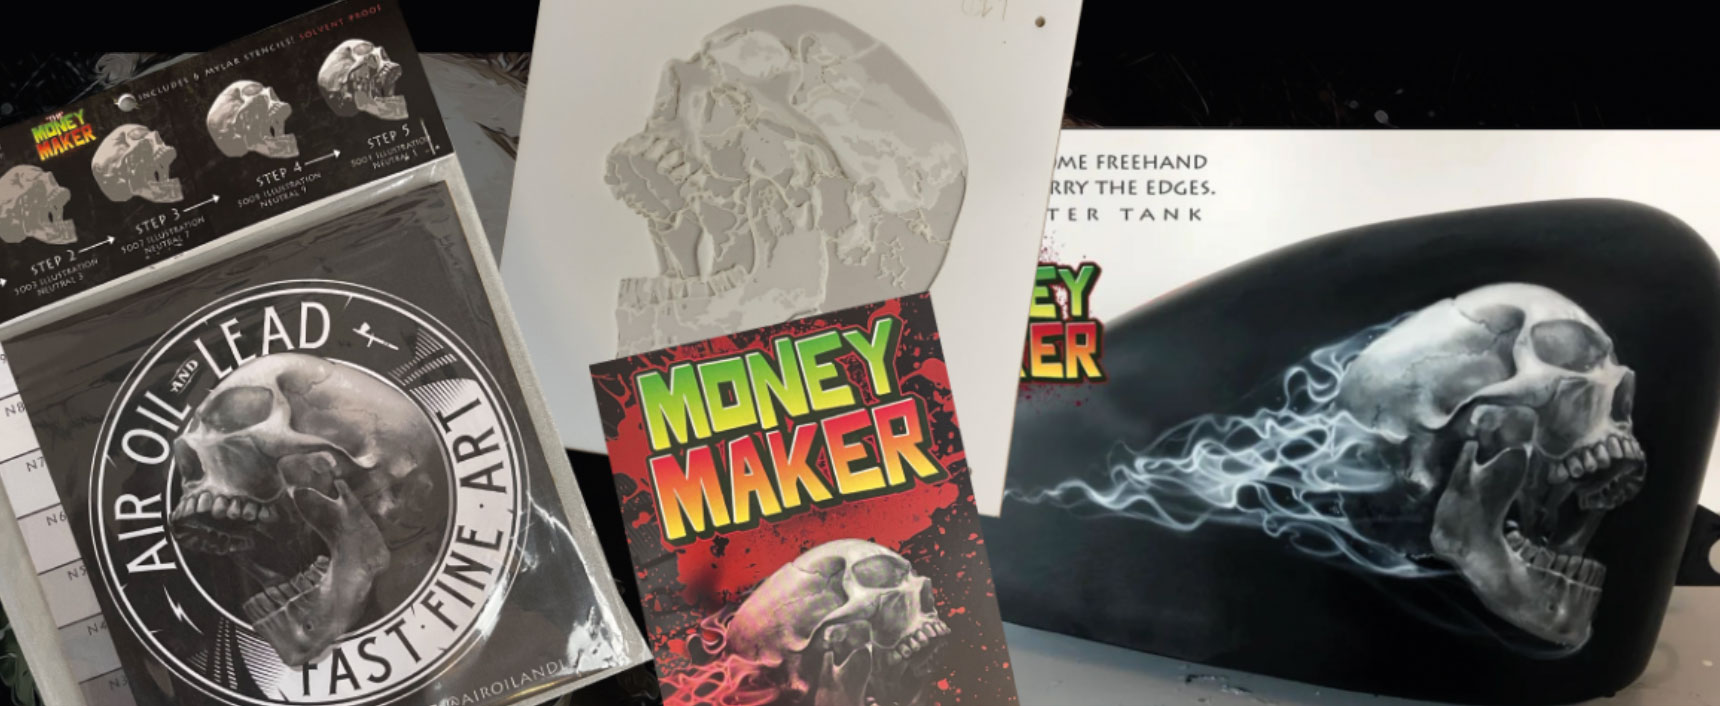 The Money Maker: Sechsteiliges Totenkopf-Schablonenset von Steve Gibson